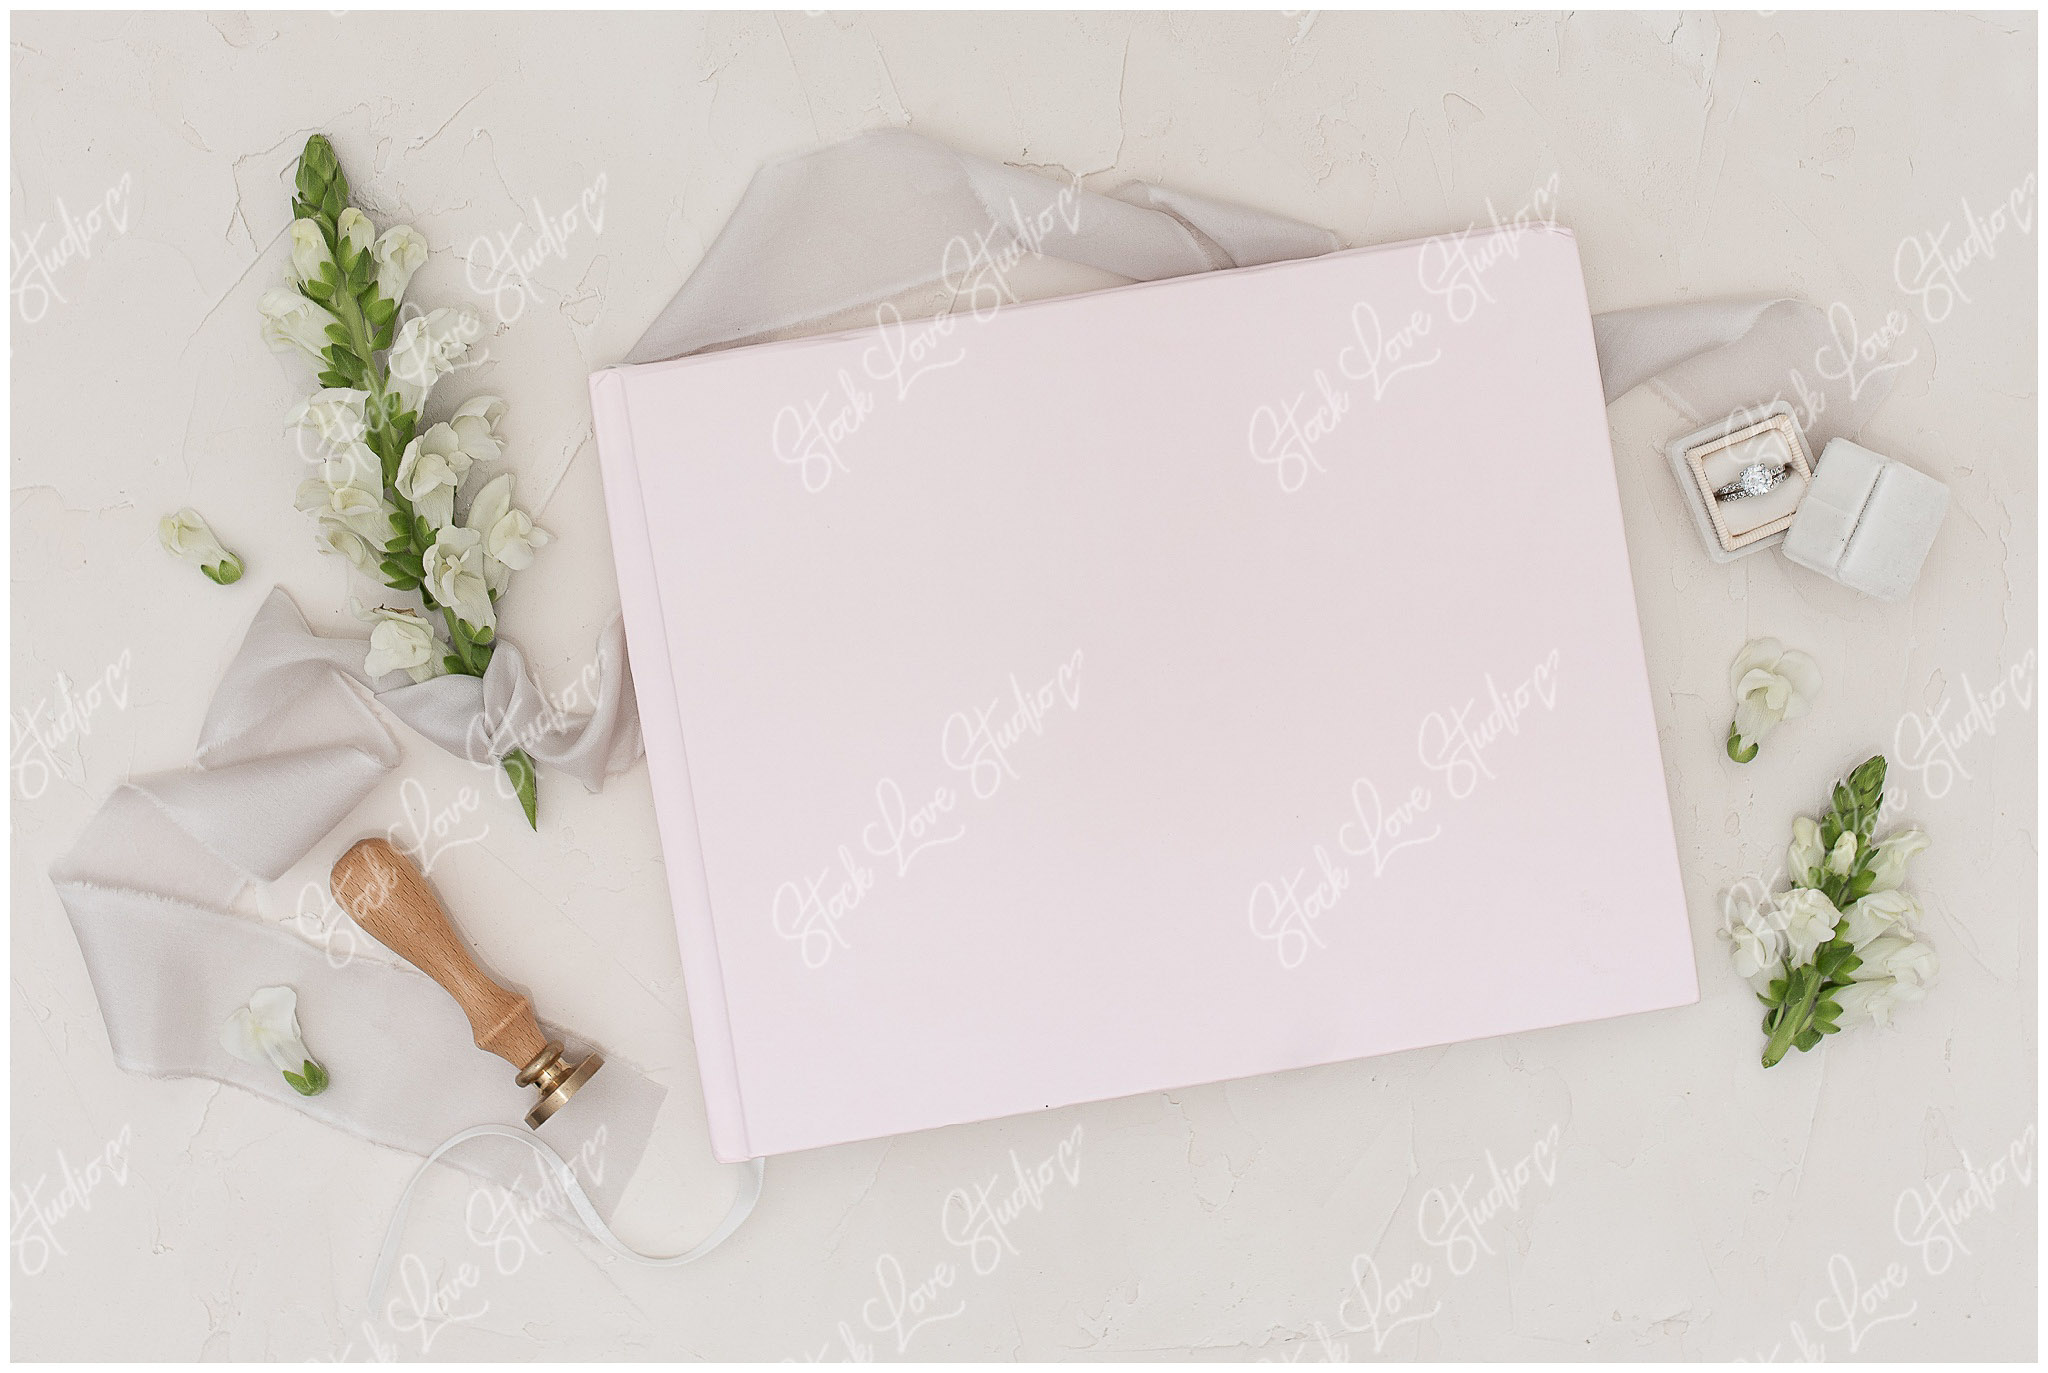 custom_stationery_mockup_0005.jpg